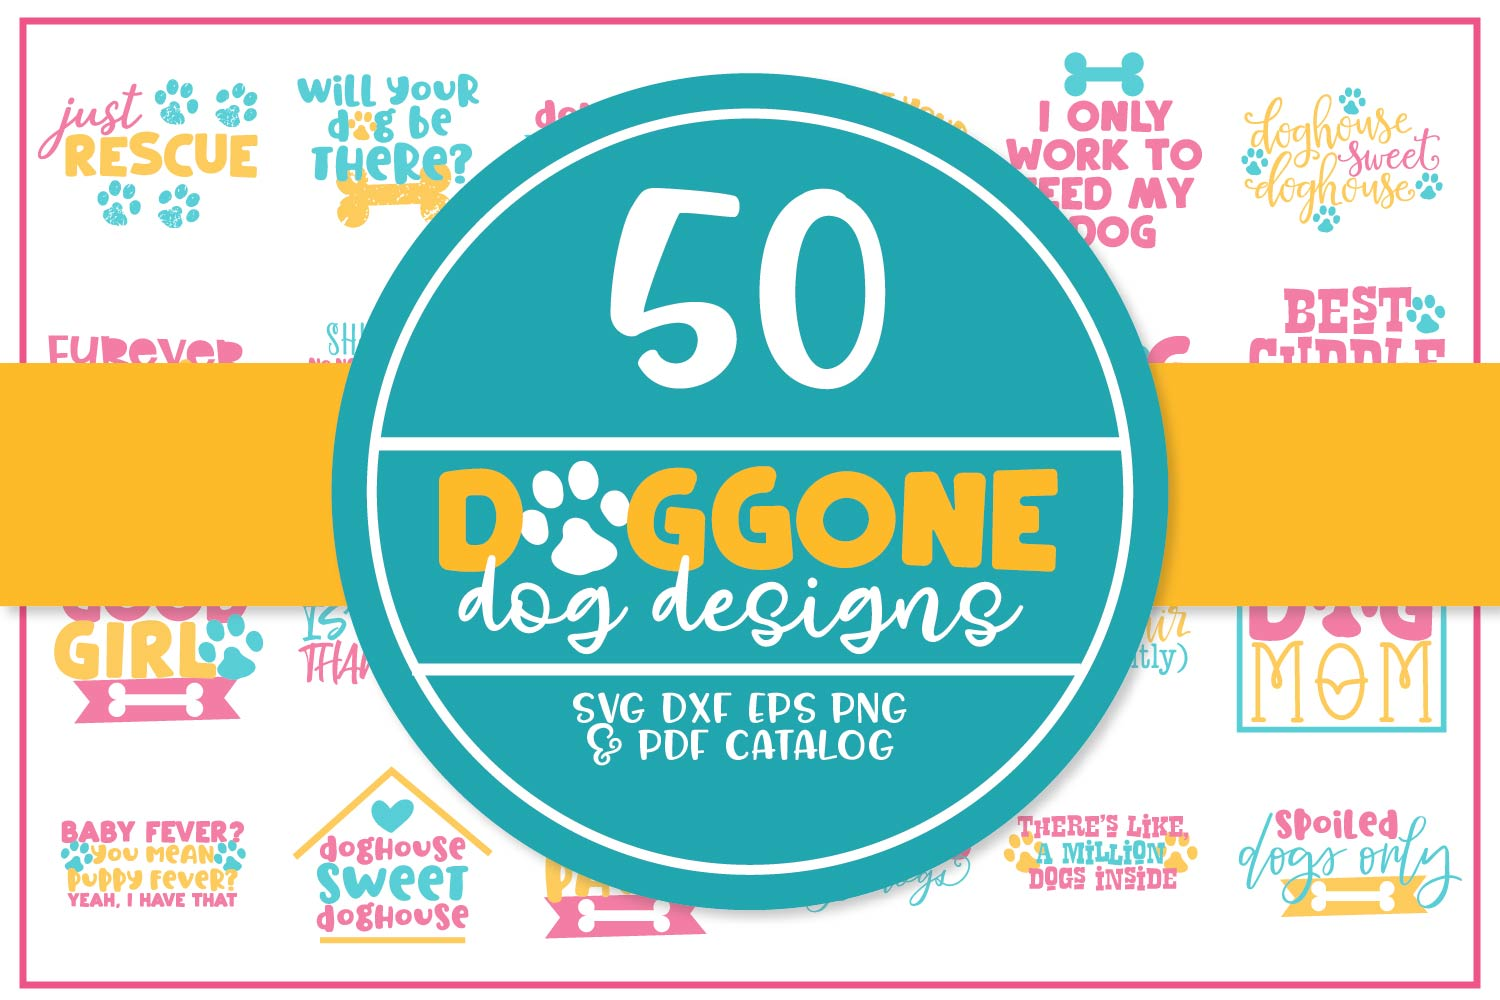 Download Free Doggone Mega Bundle Graphic By Justina Tracy Creative Fabrica for Cricut Explore, Silhouette and other cutting machines.